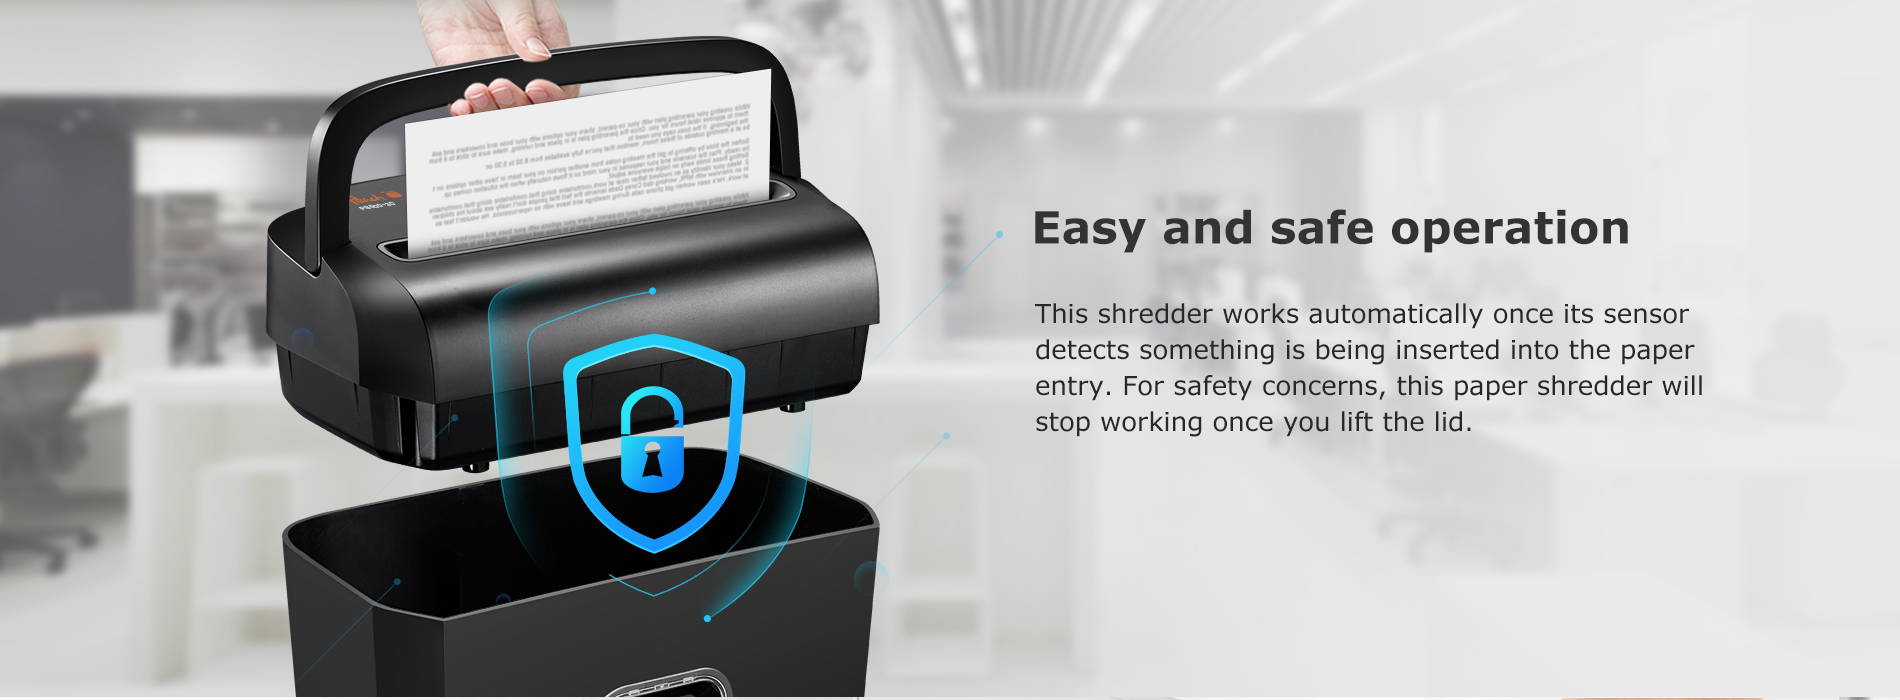 Easy and safe operation  This shredder works automatically once its sensor detects something is being inserted into the paper entry. For safety concerns, this paper shredder will stop working once you lift the lid.